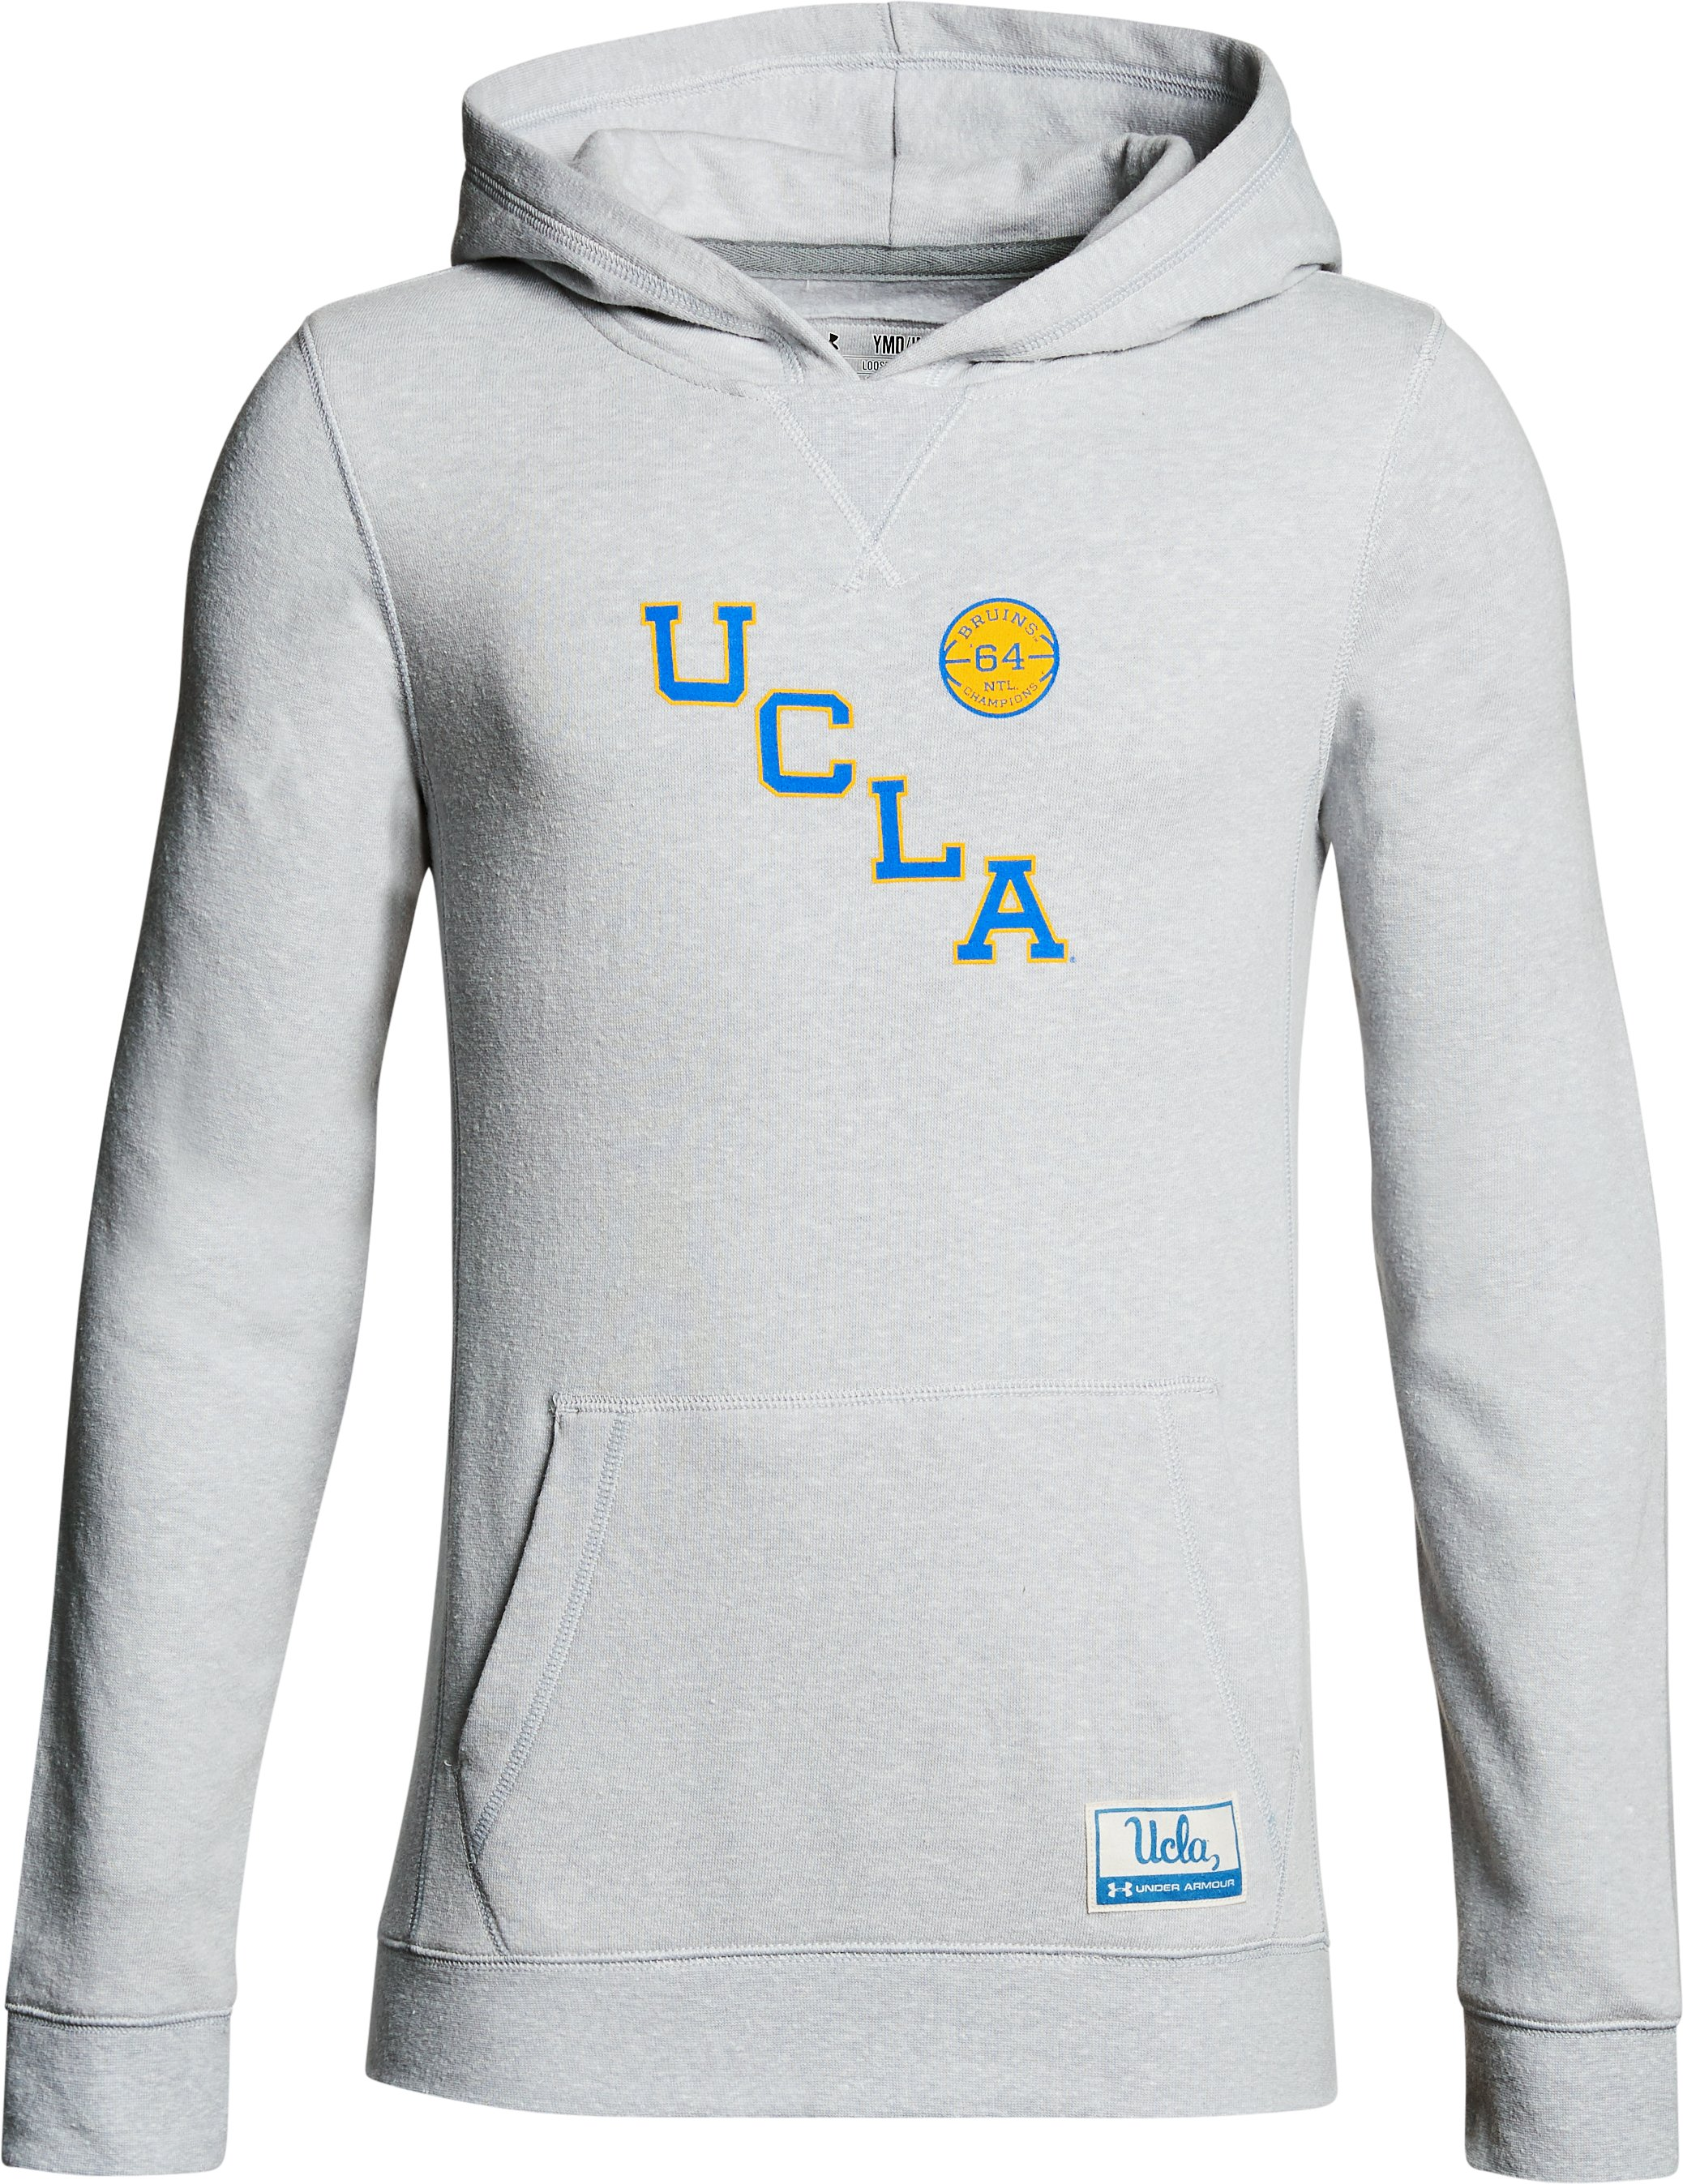 Boy's UCLA Iconic Hoodie, Gray, undefined